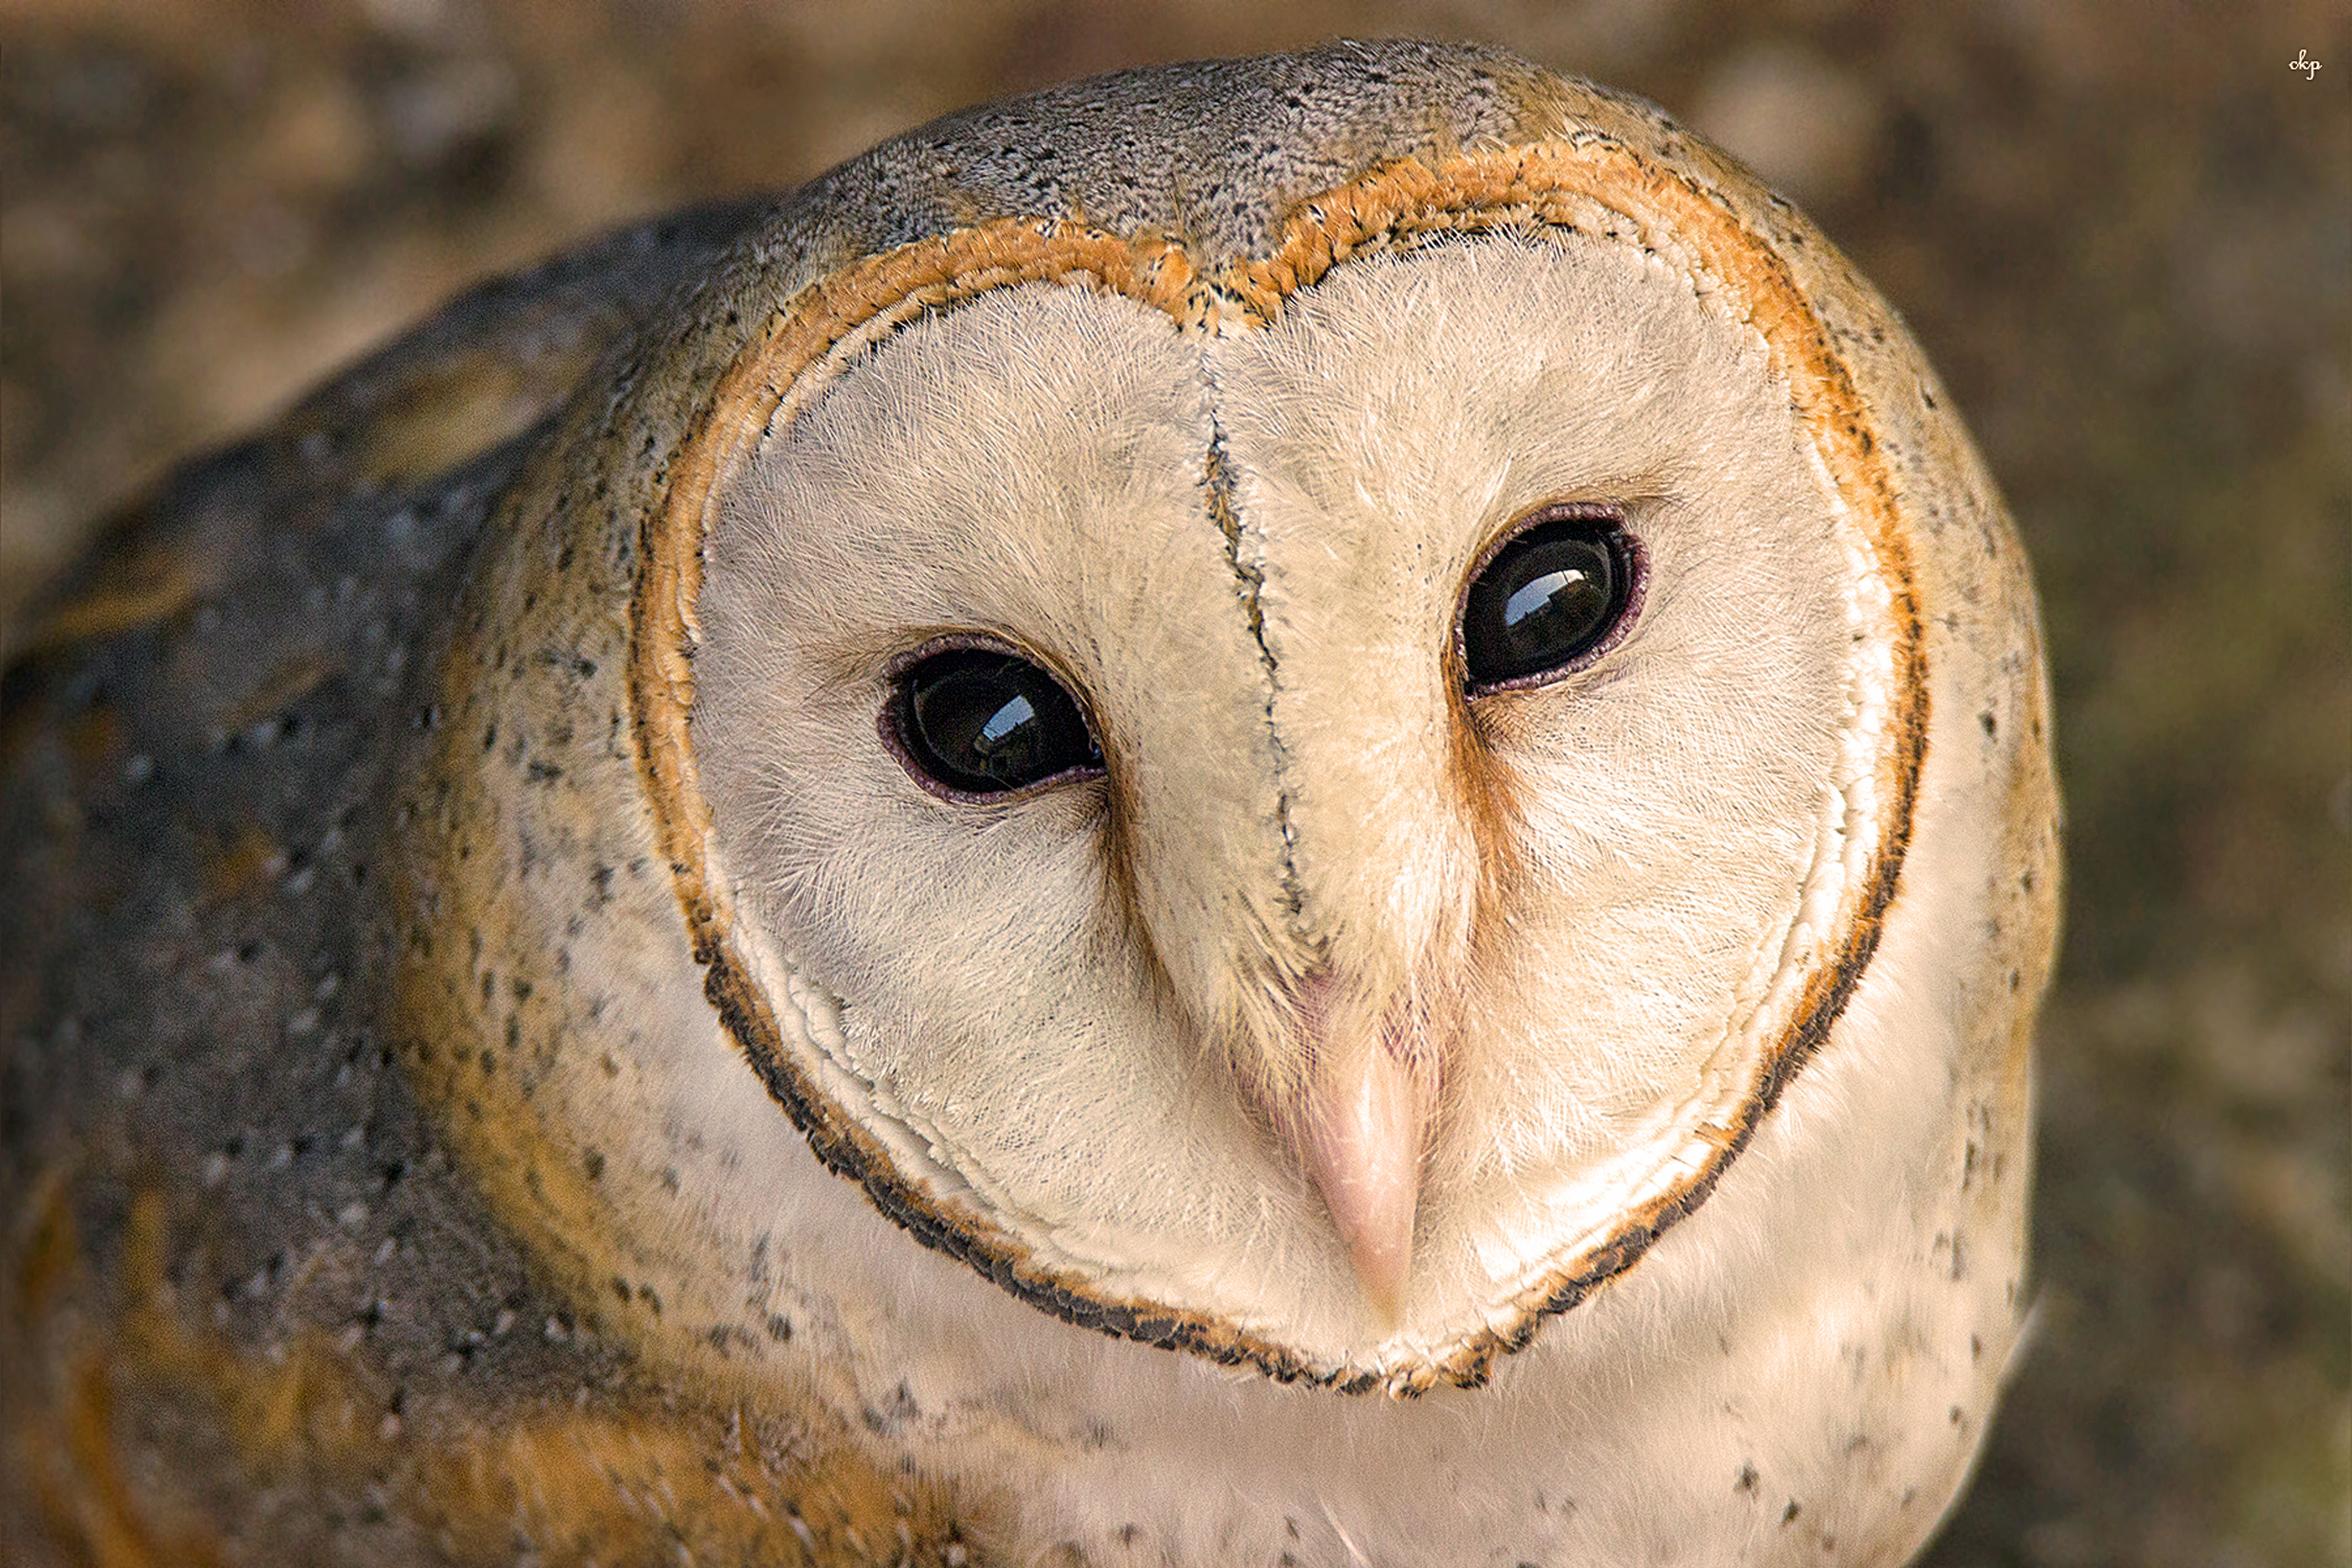 The Look Of Love An Adorable Owl With Heart Shaped Face